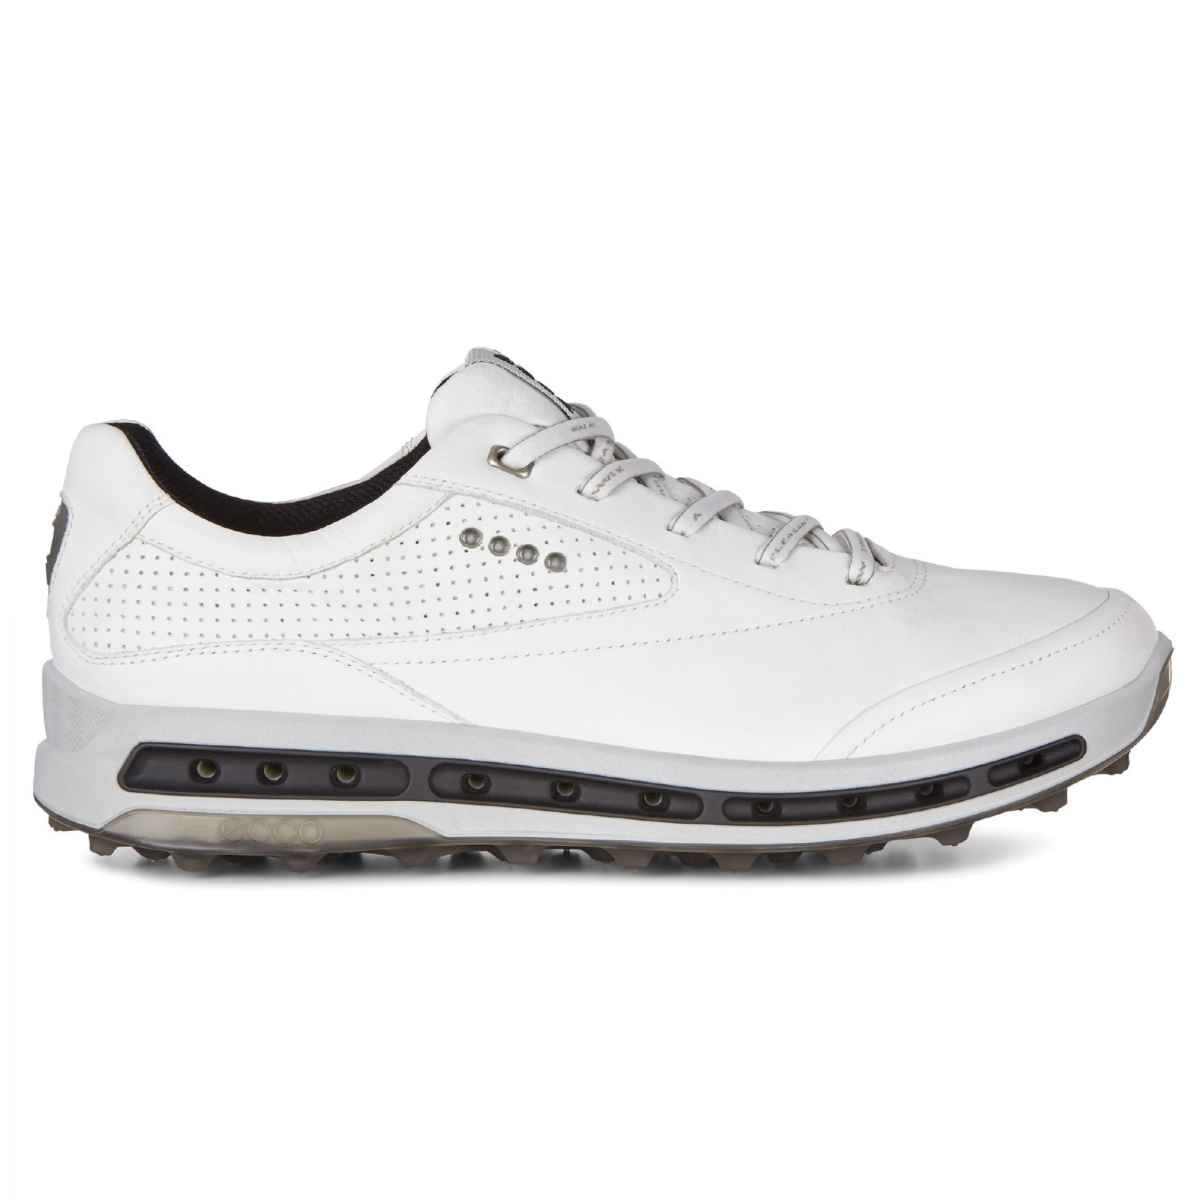 ecco golf shoe spikes